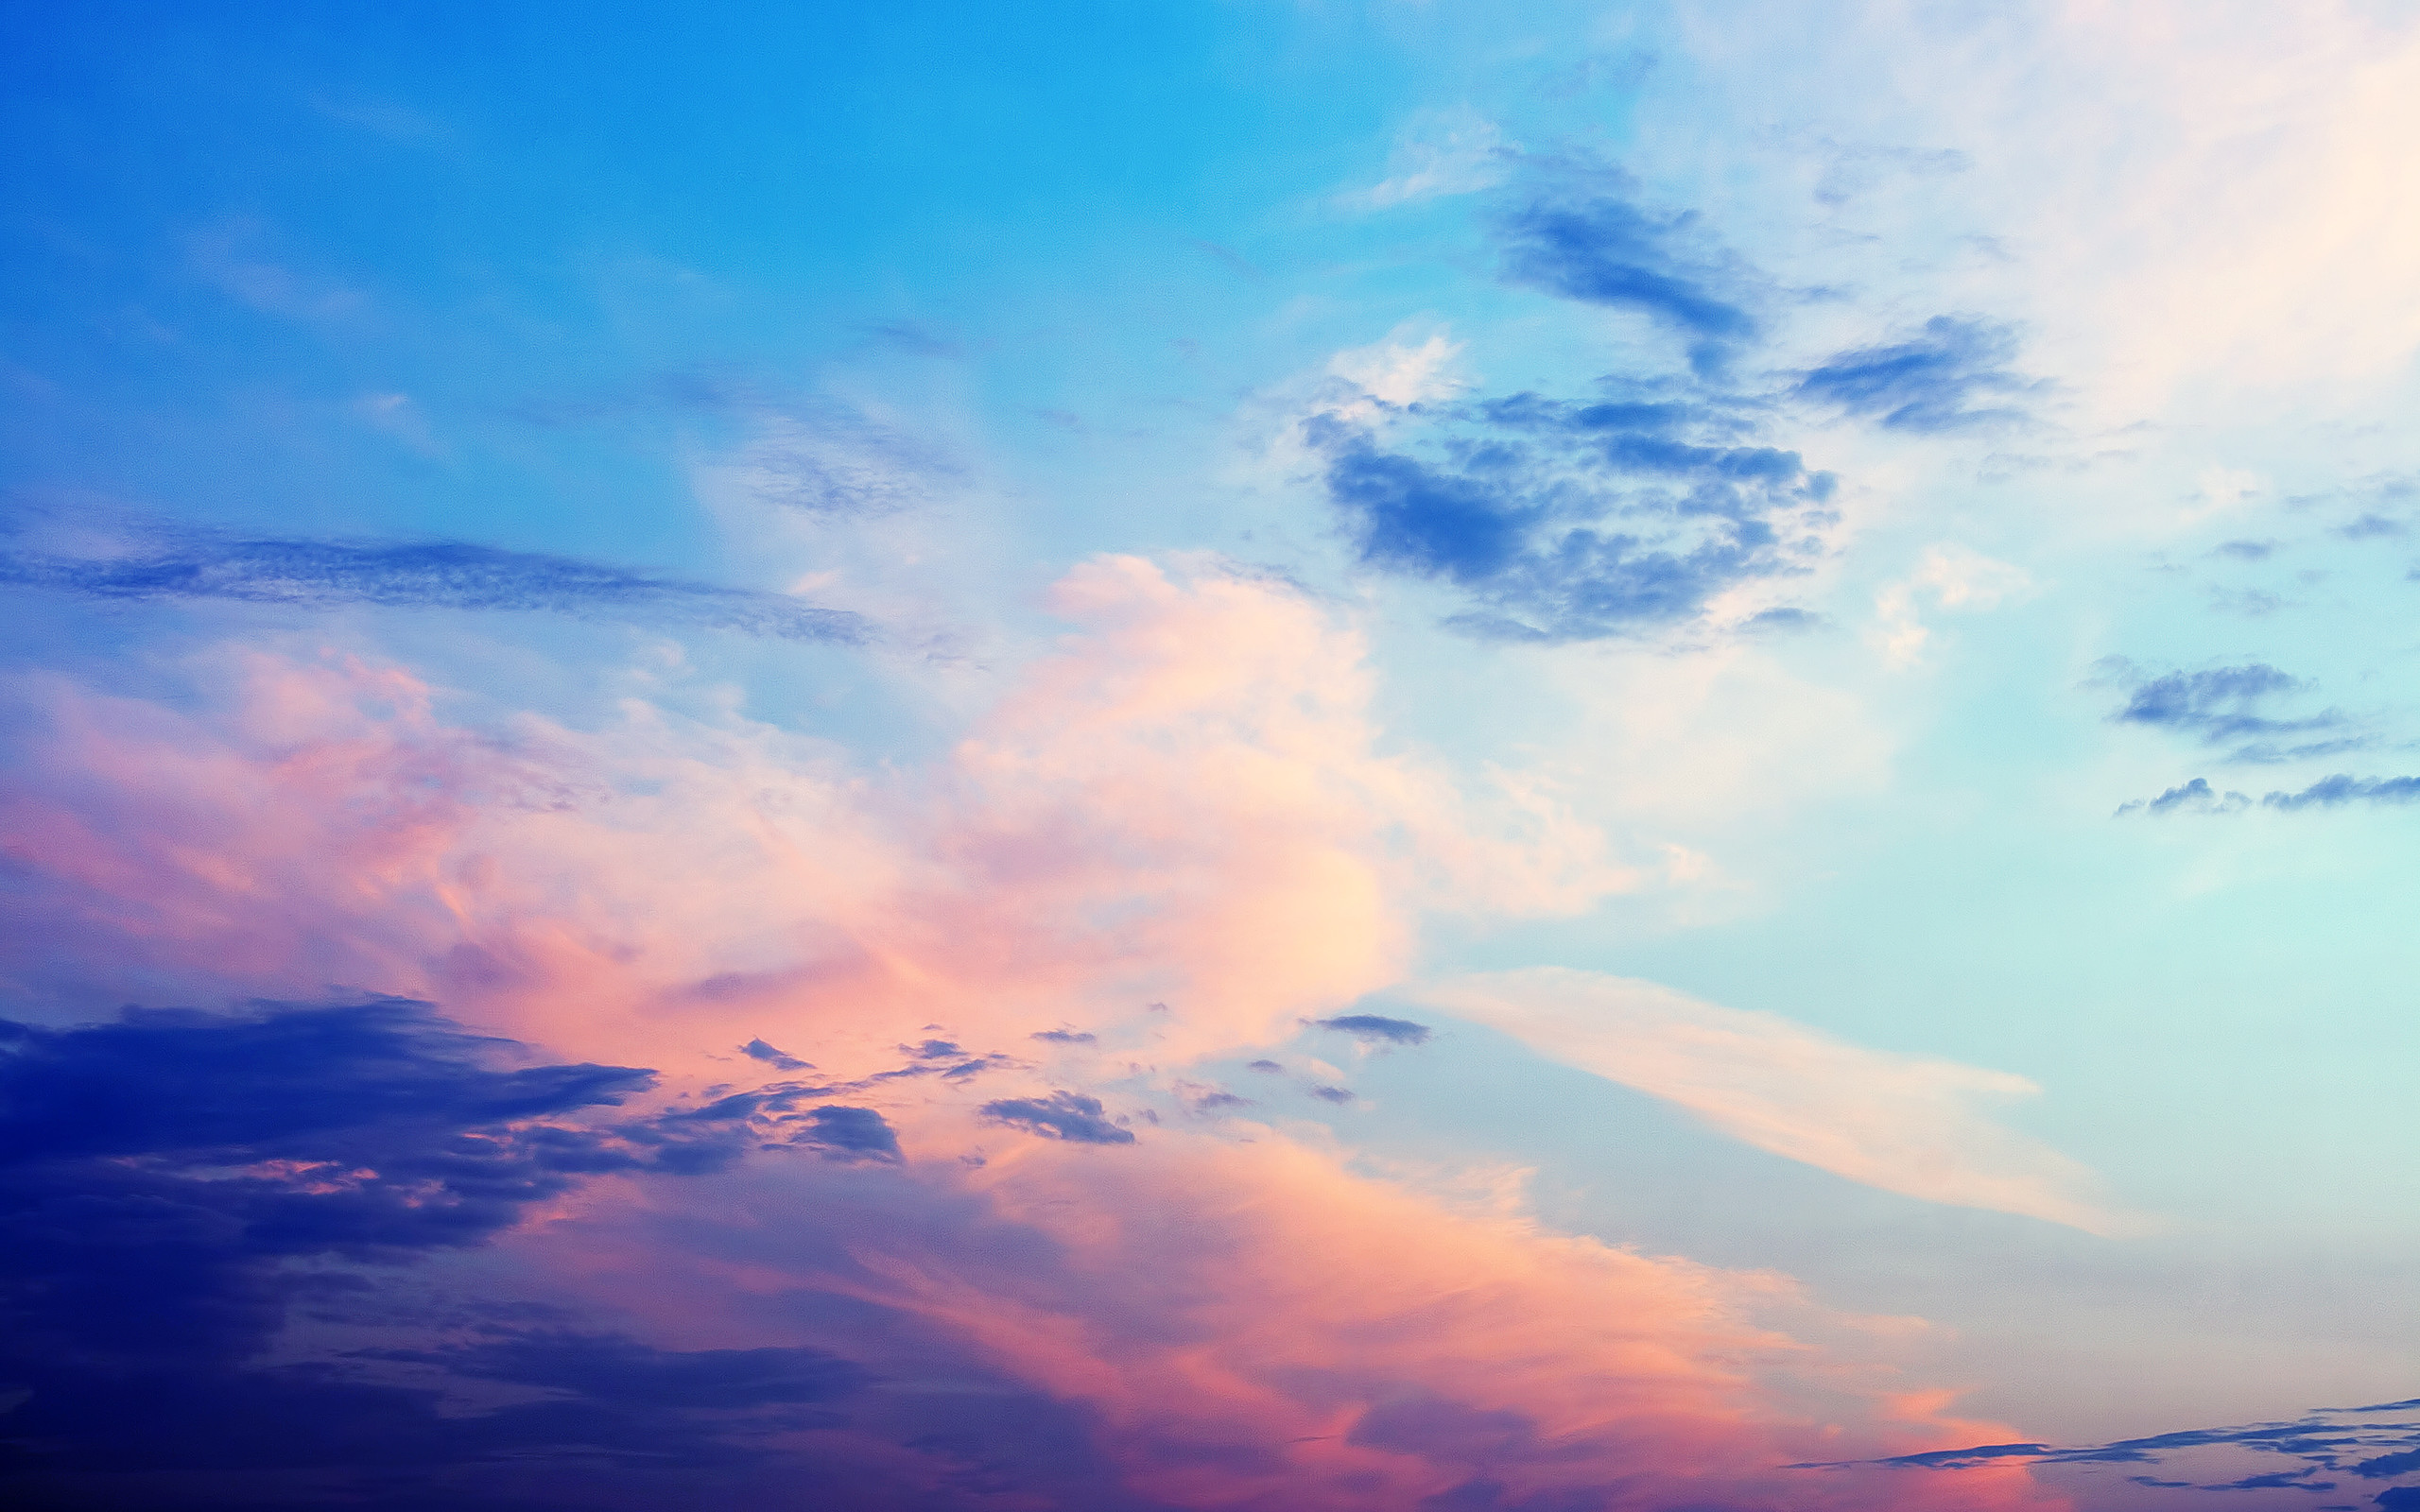 Sky Cloud Wallpapers Hd: Cloudy Sky Wallpaper (66+ Images